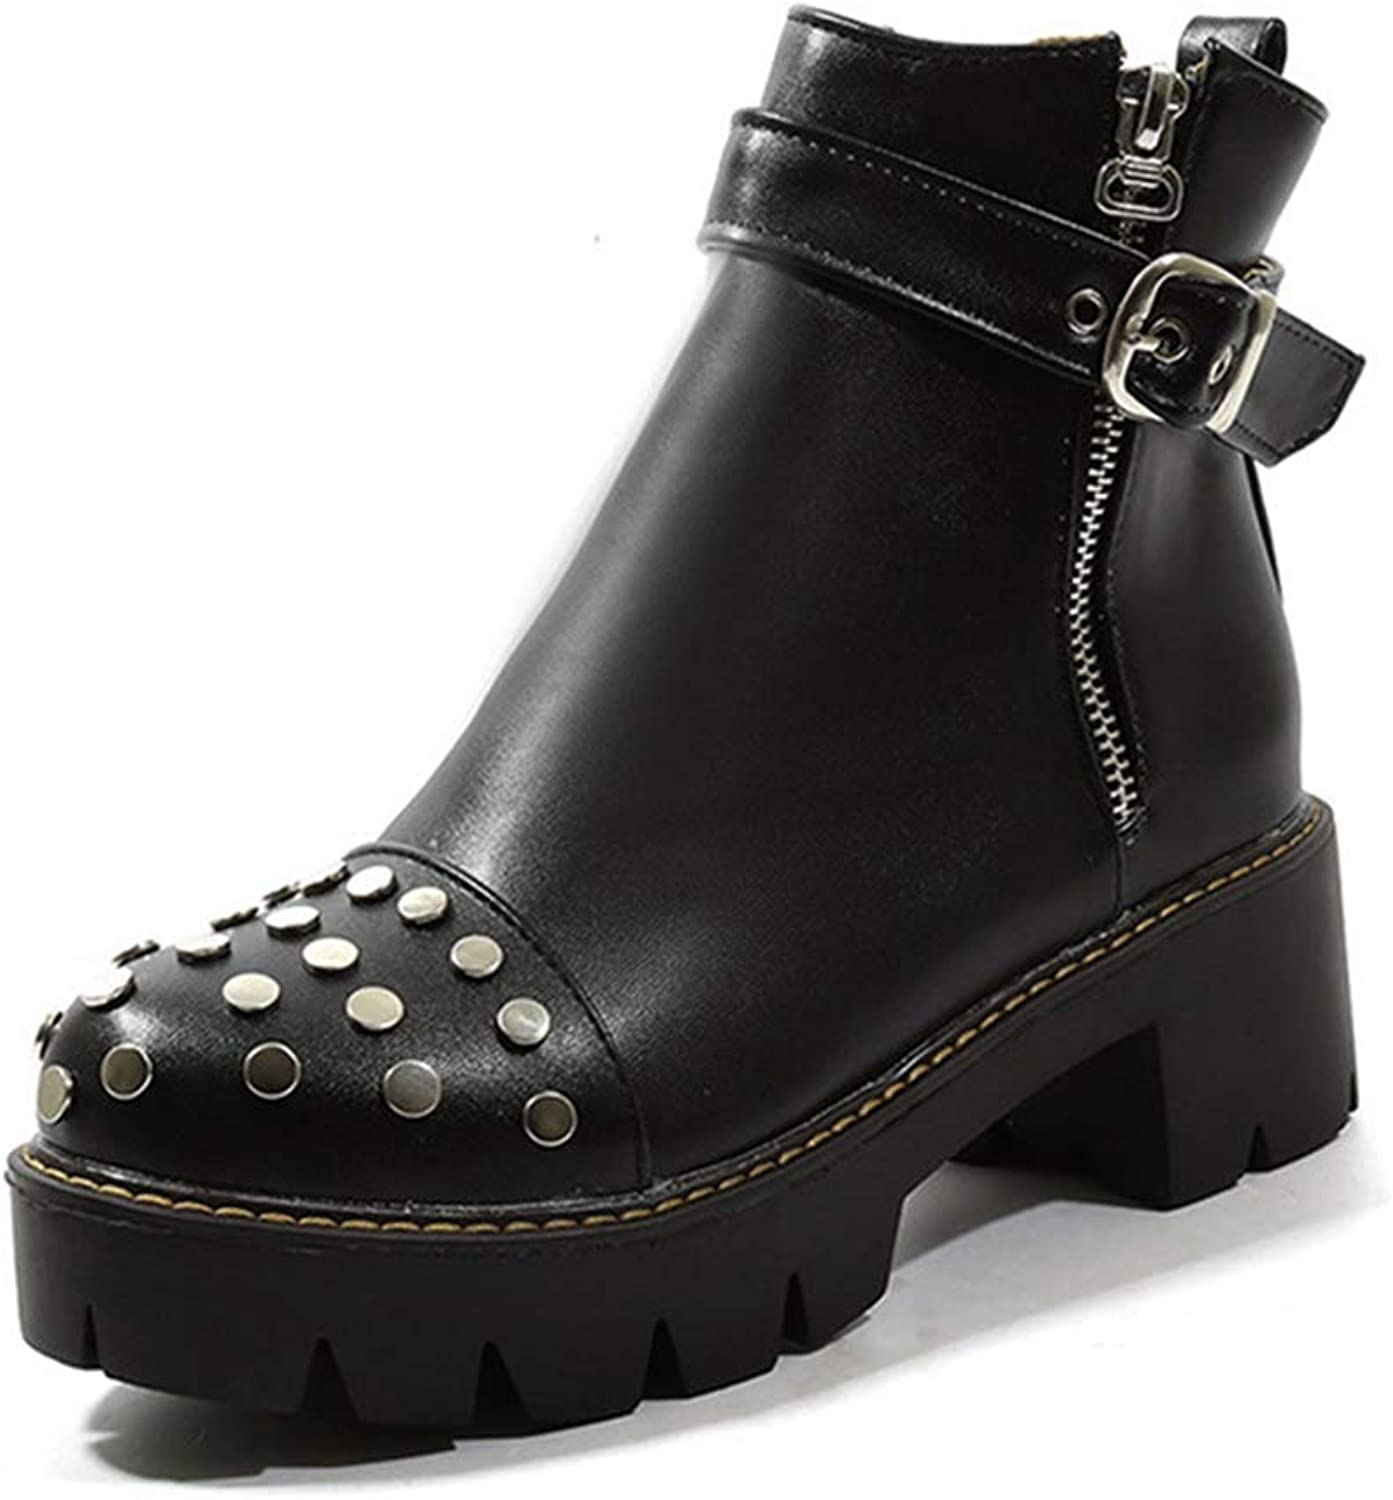 GIY Women's Chunky Platform Motorcycle Ankle Boots Buckle Rivets Round Toe Zip Bootie Mid Heel Short Boots